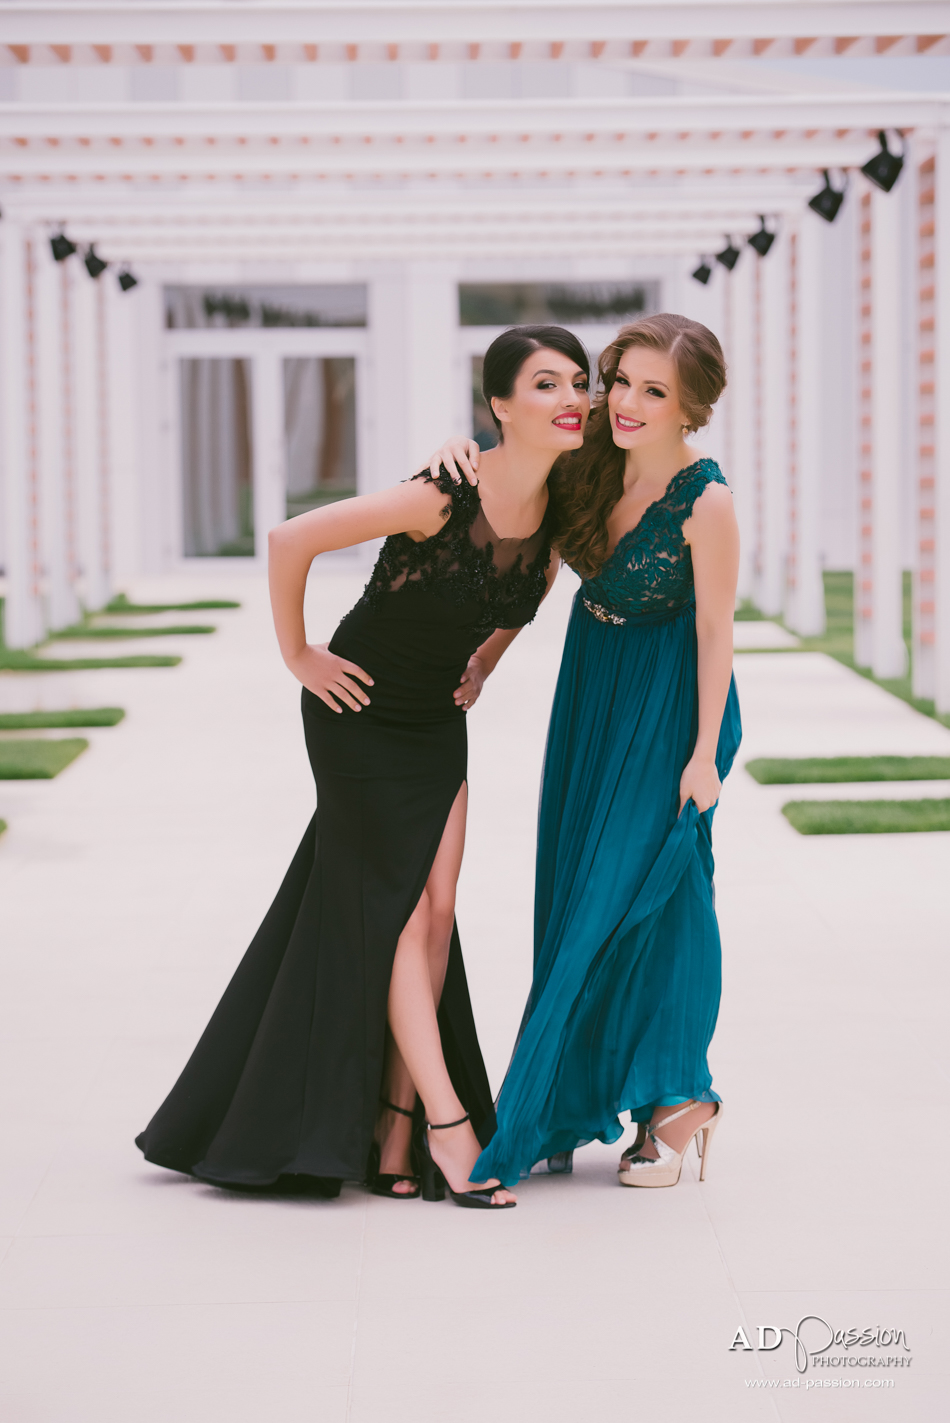 AD Passion Photography | 20150625_claudia-irene-fotograf-absolventi-sedinta-foto-banchet_0028 | Adelin, Dida, fotograf profesionist, fotograf de nunta, fotografie de nunta, fotograf Timisoara, fotograf Craiova, fotograf Bucuresti, fotograf Arad, nunta Timisoara, nunta Arad, nunta Bucuresti, nunta Craiova